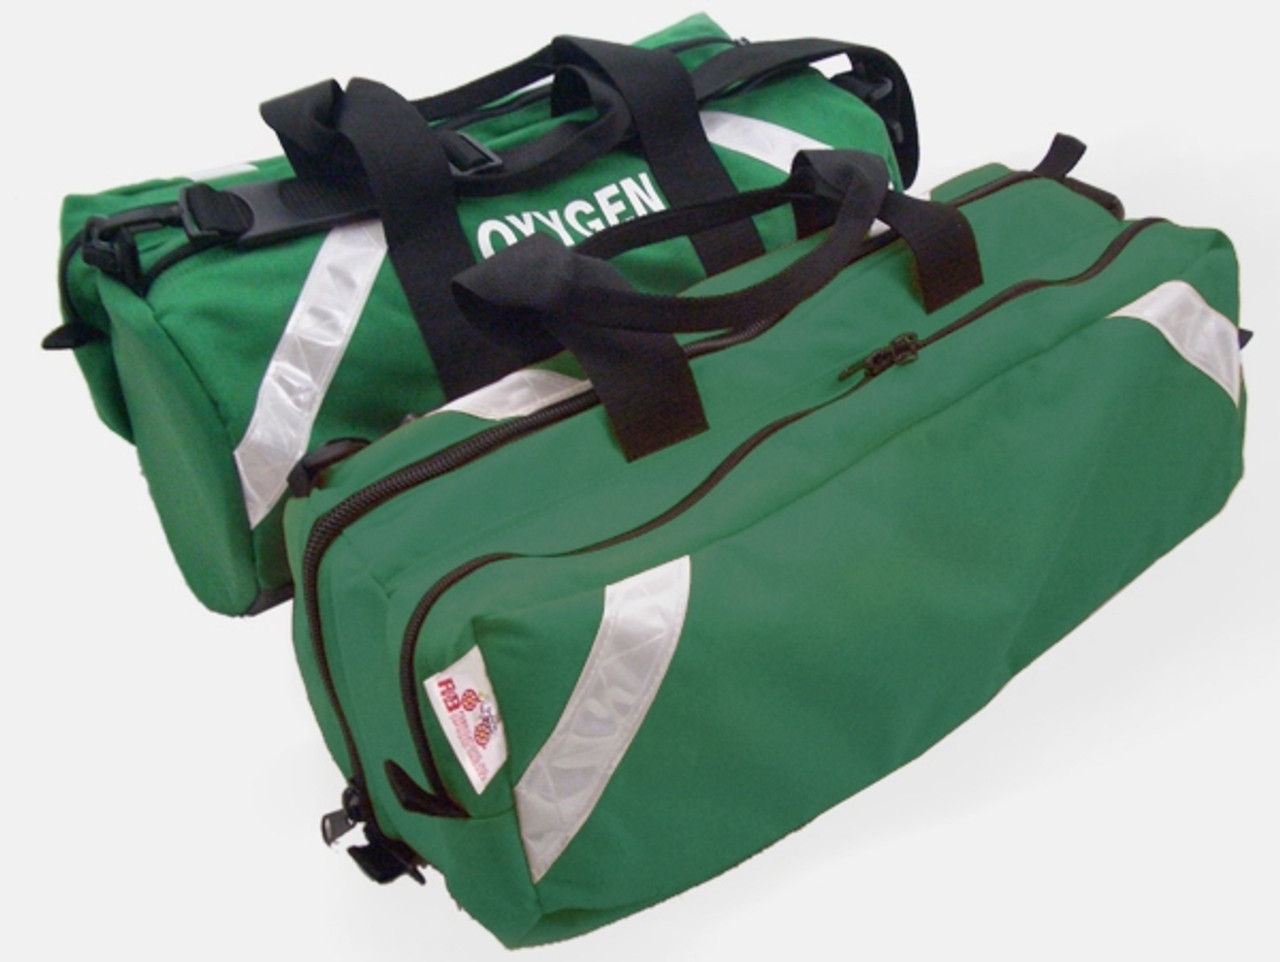 Oxygen Roll Bag with Pocket